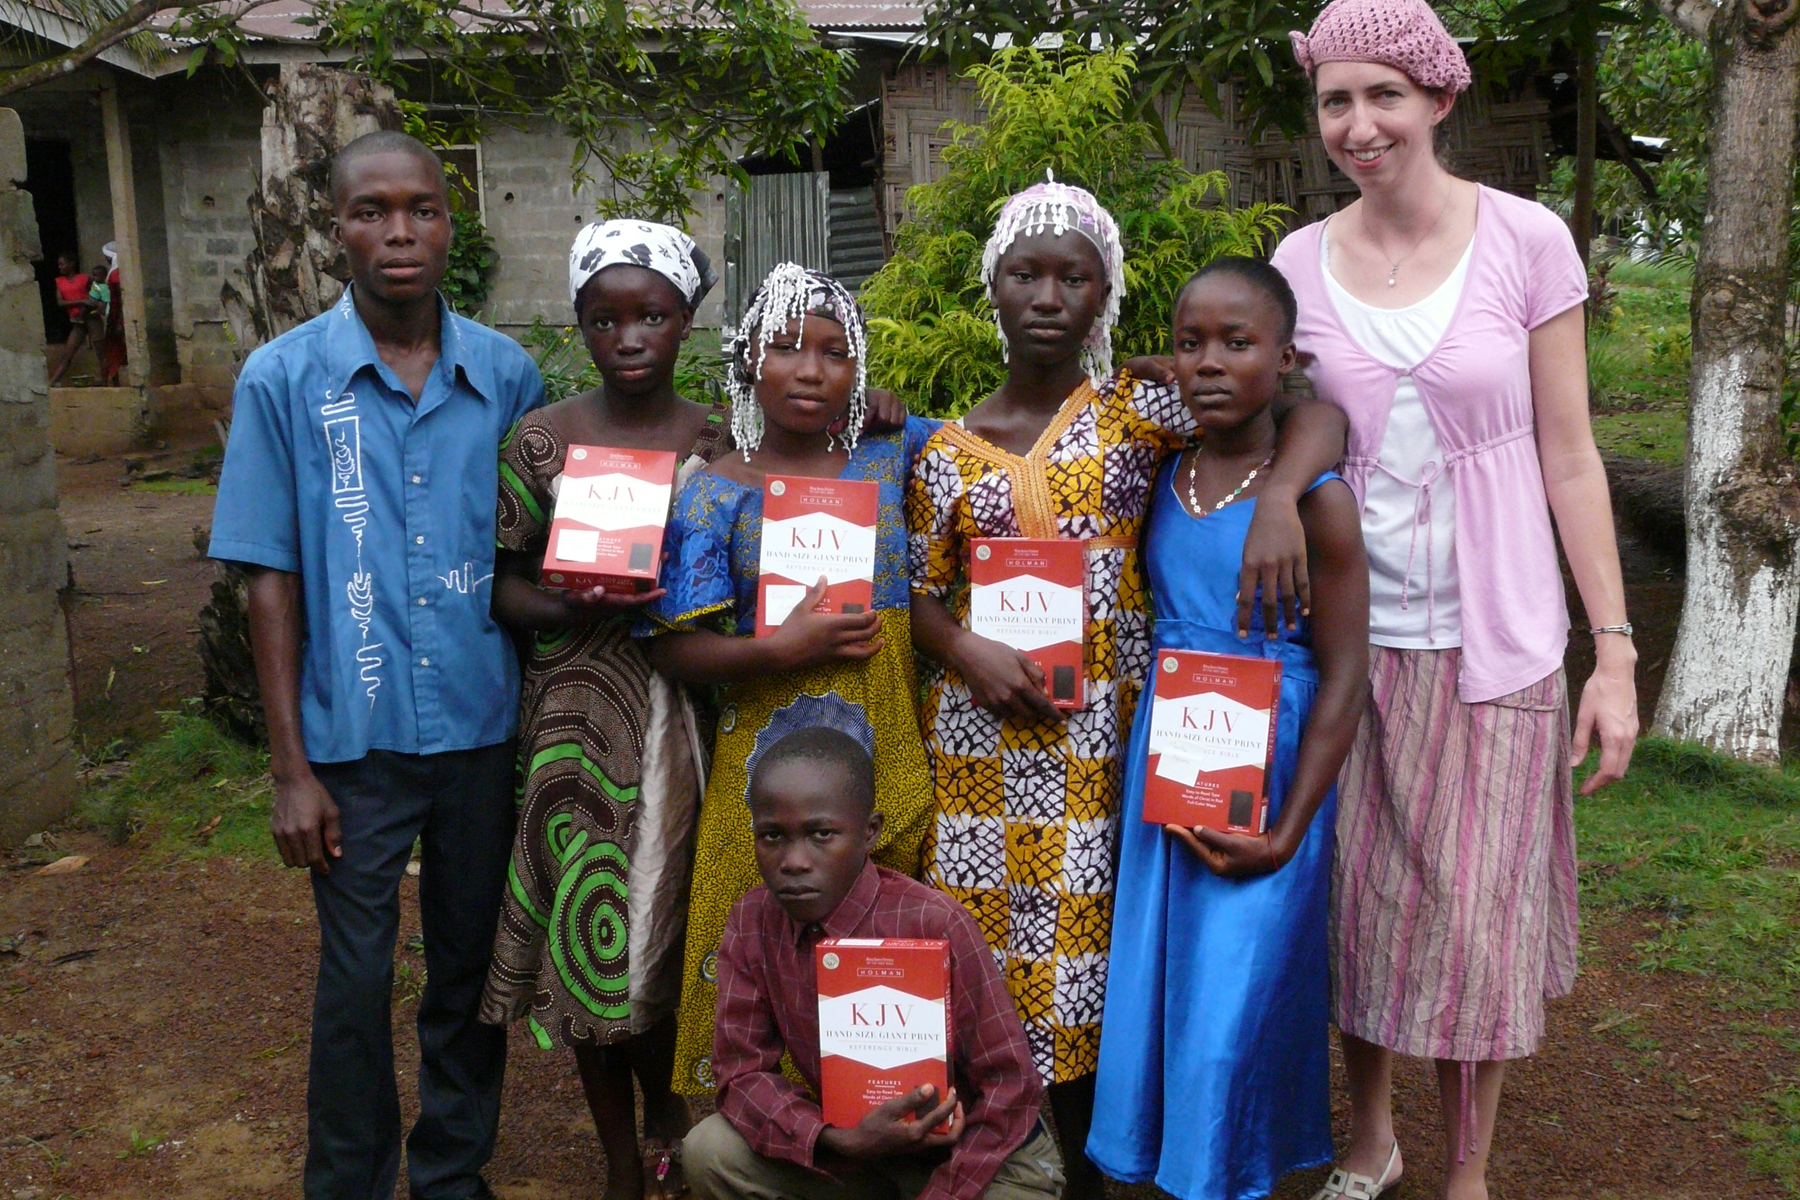 Joanne Greer, Liberian missionary from the Free Presbyterian Church of Ulster, poses with her students shortly before her evacuation from the country because of the deadly Ebola virus